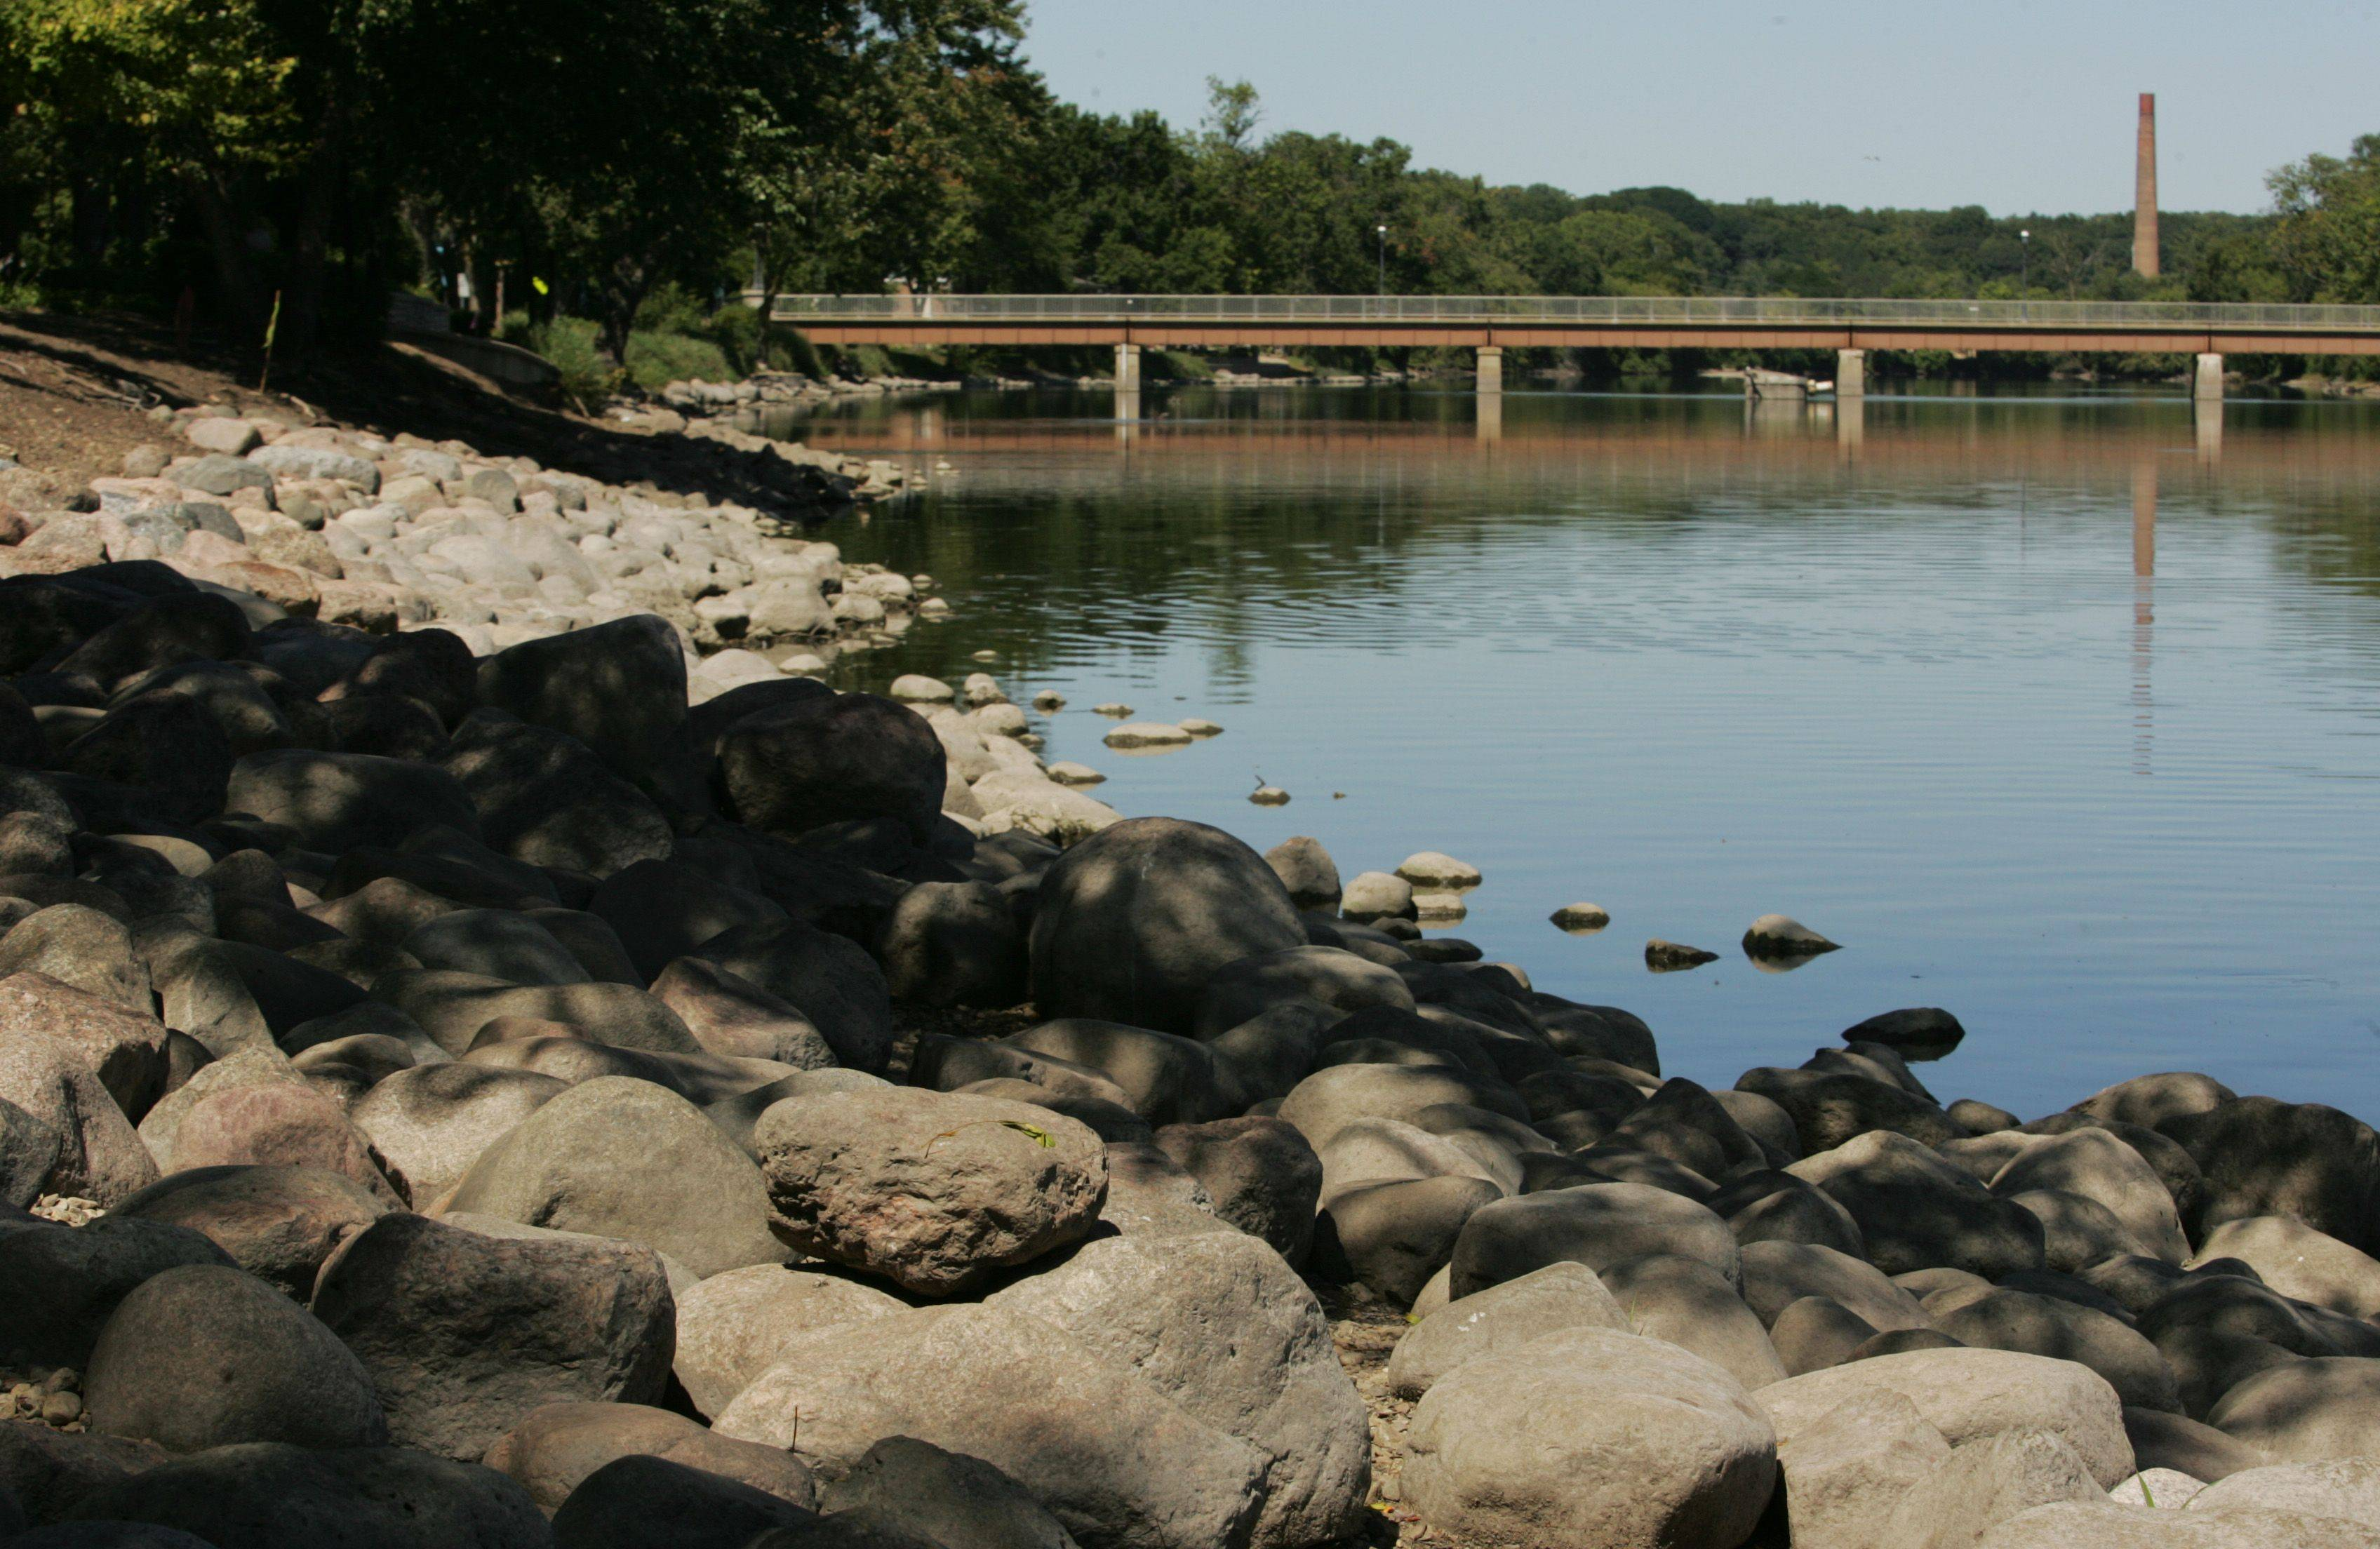 The western shore of the Fox River is lined with large rocks on the north side of the village. West Dundee has expanded the first phase of its riverbank stabilization project by 90 feet, which adds nearly $10,500 to its cost.